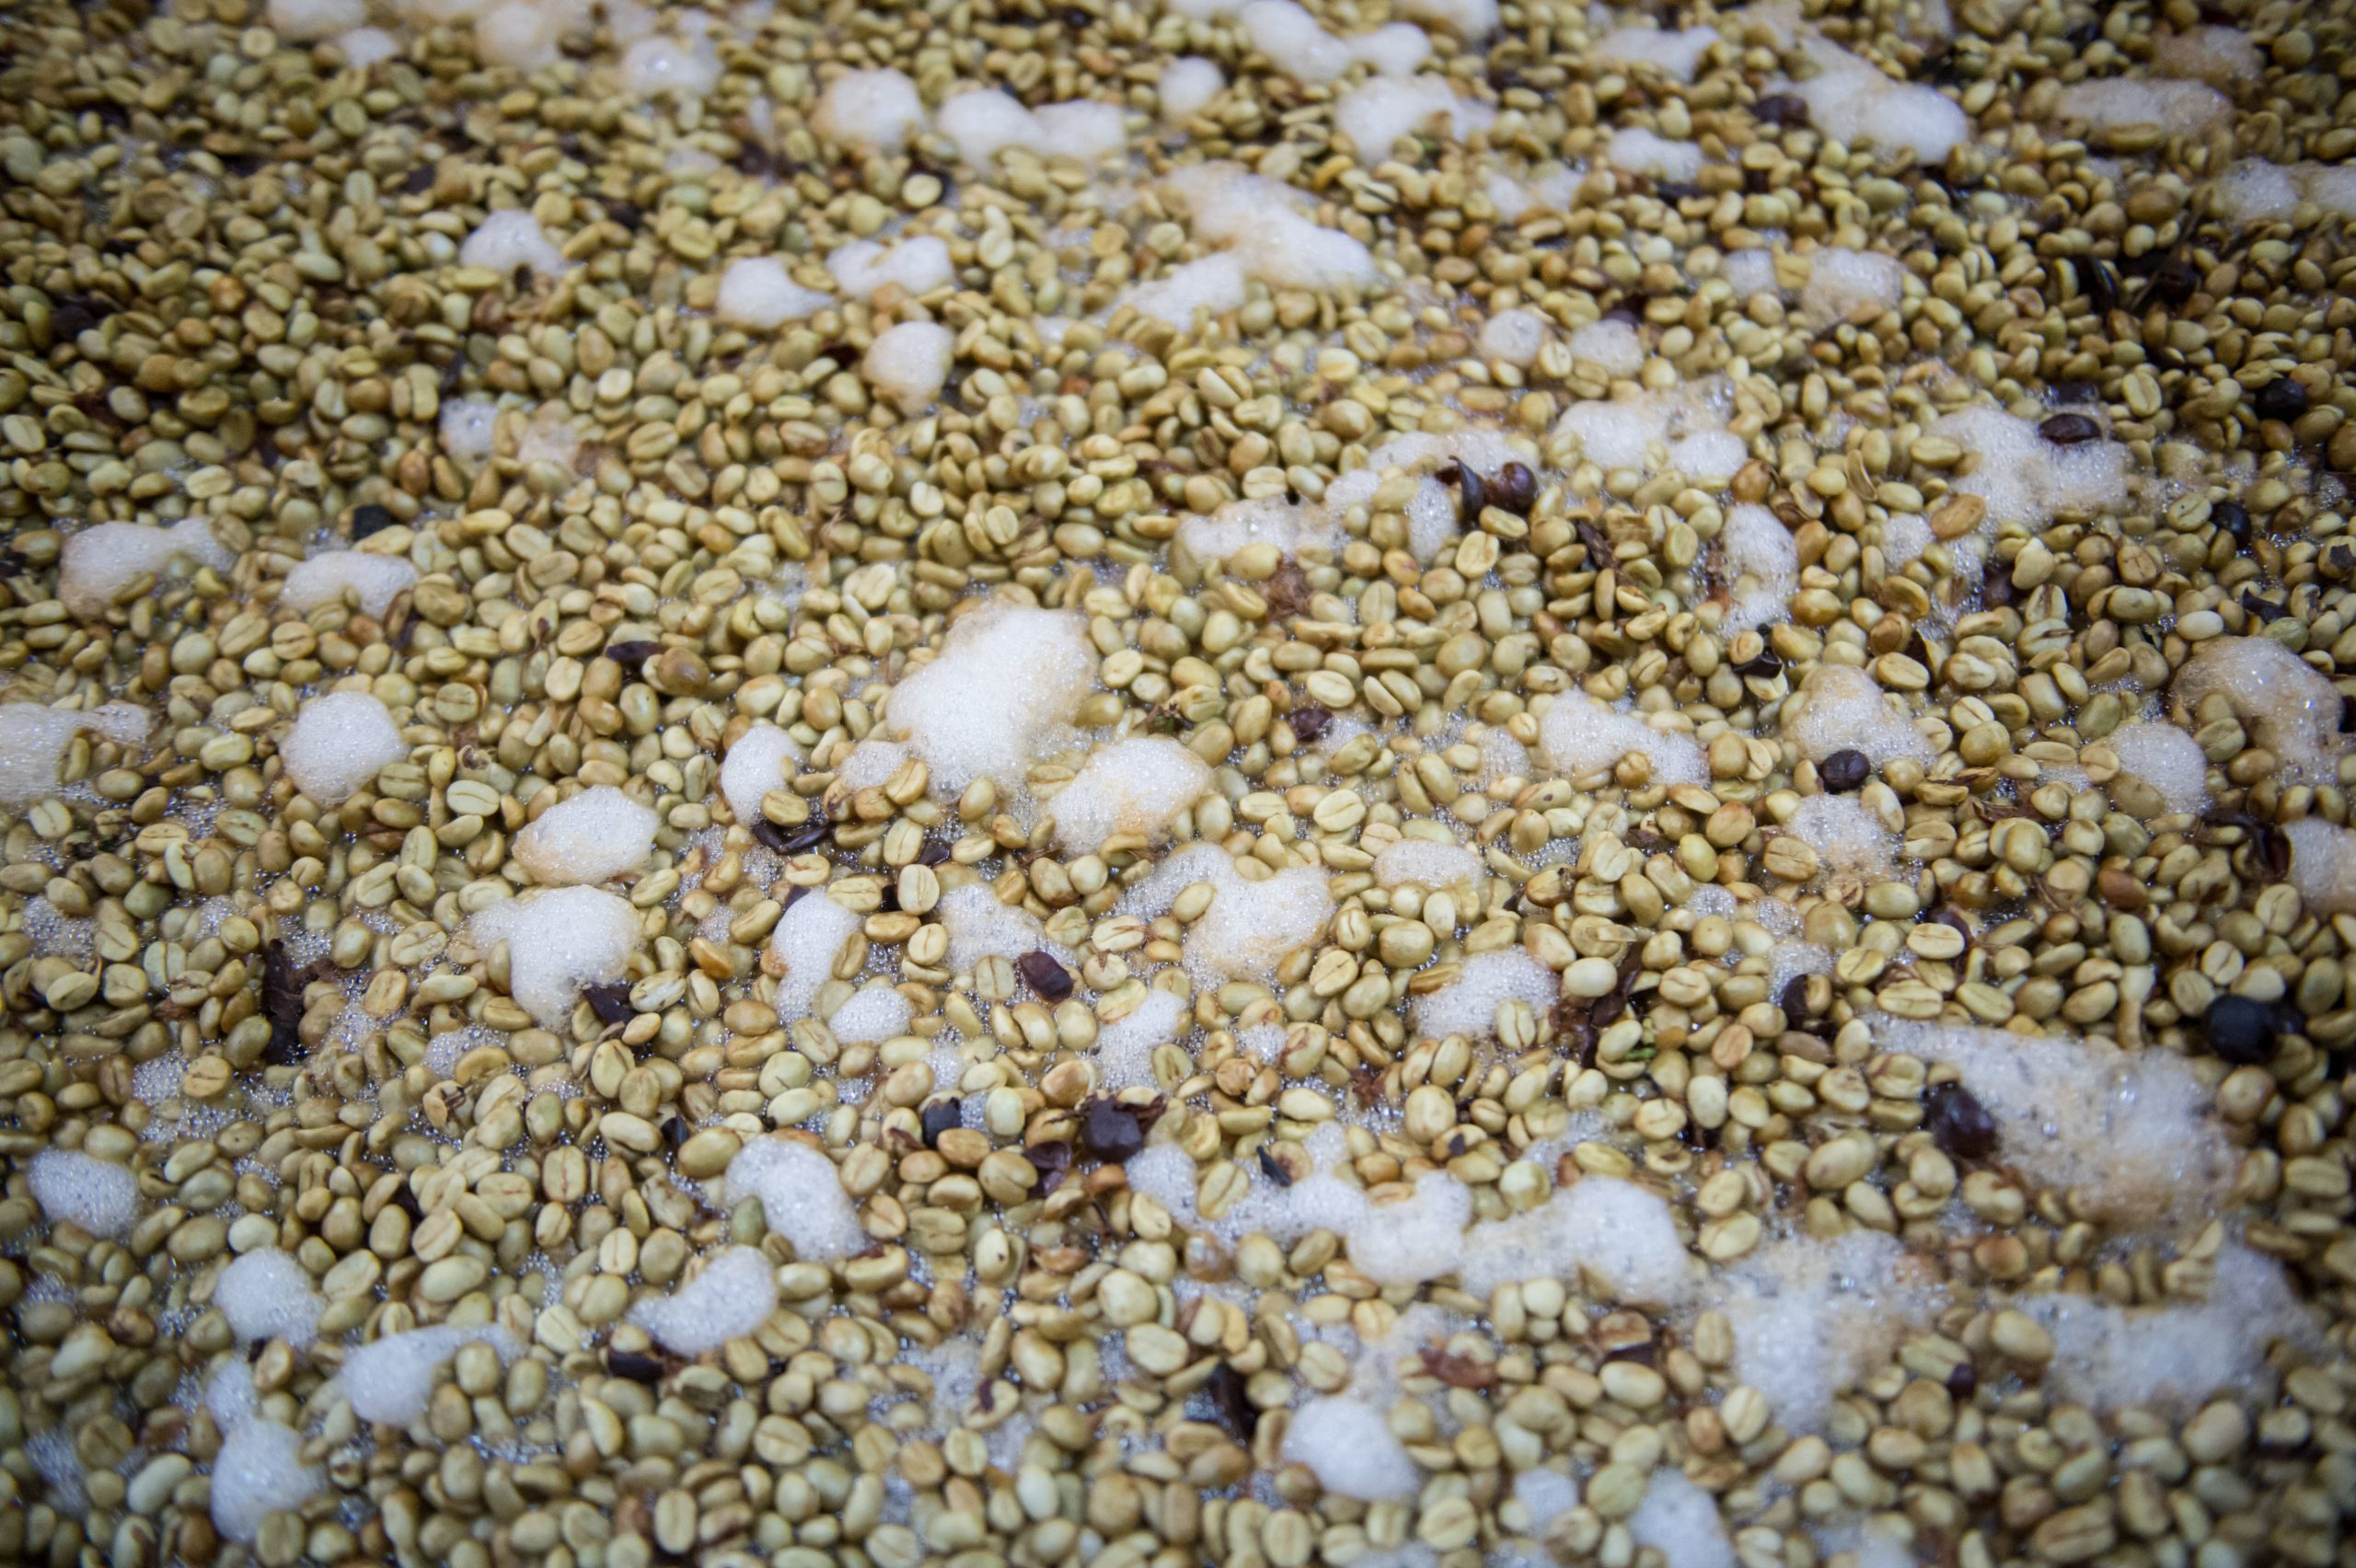 Coffee seeds being fermented